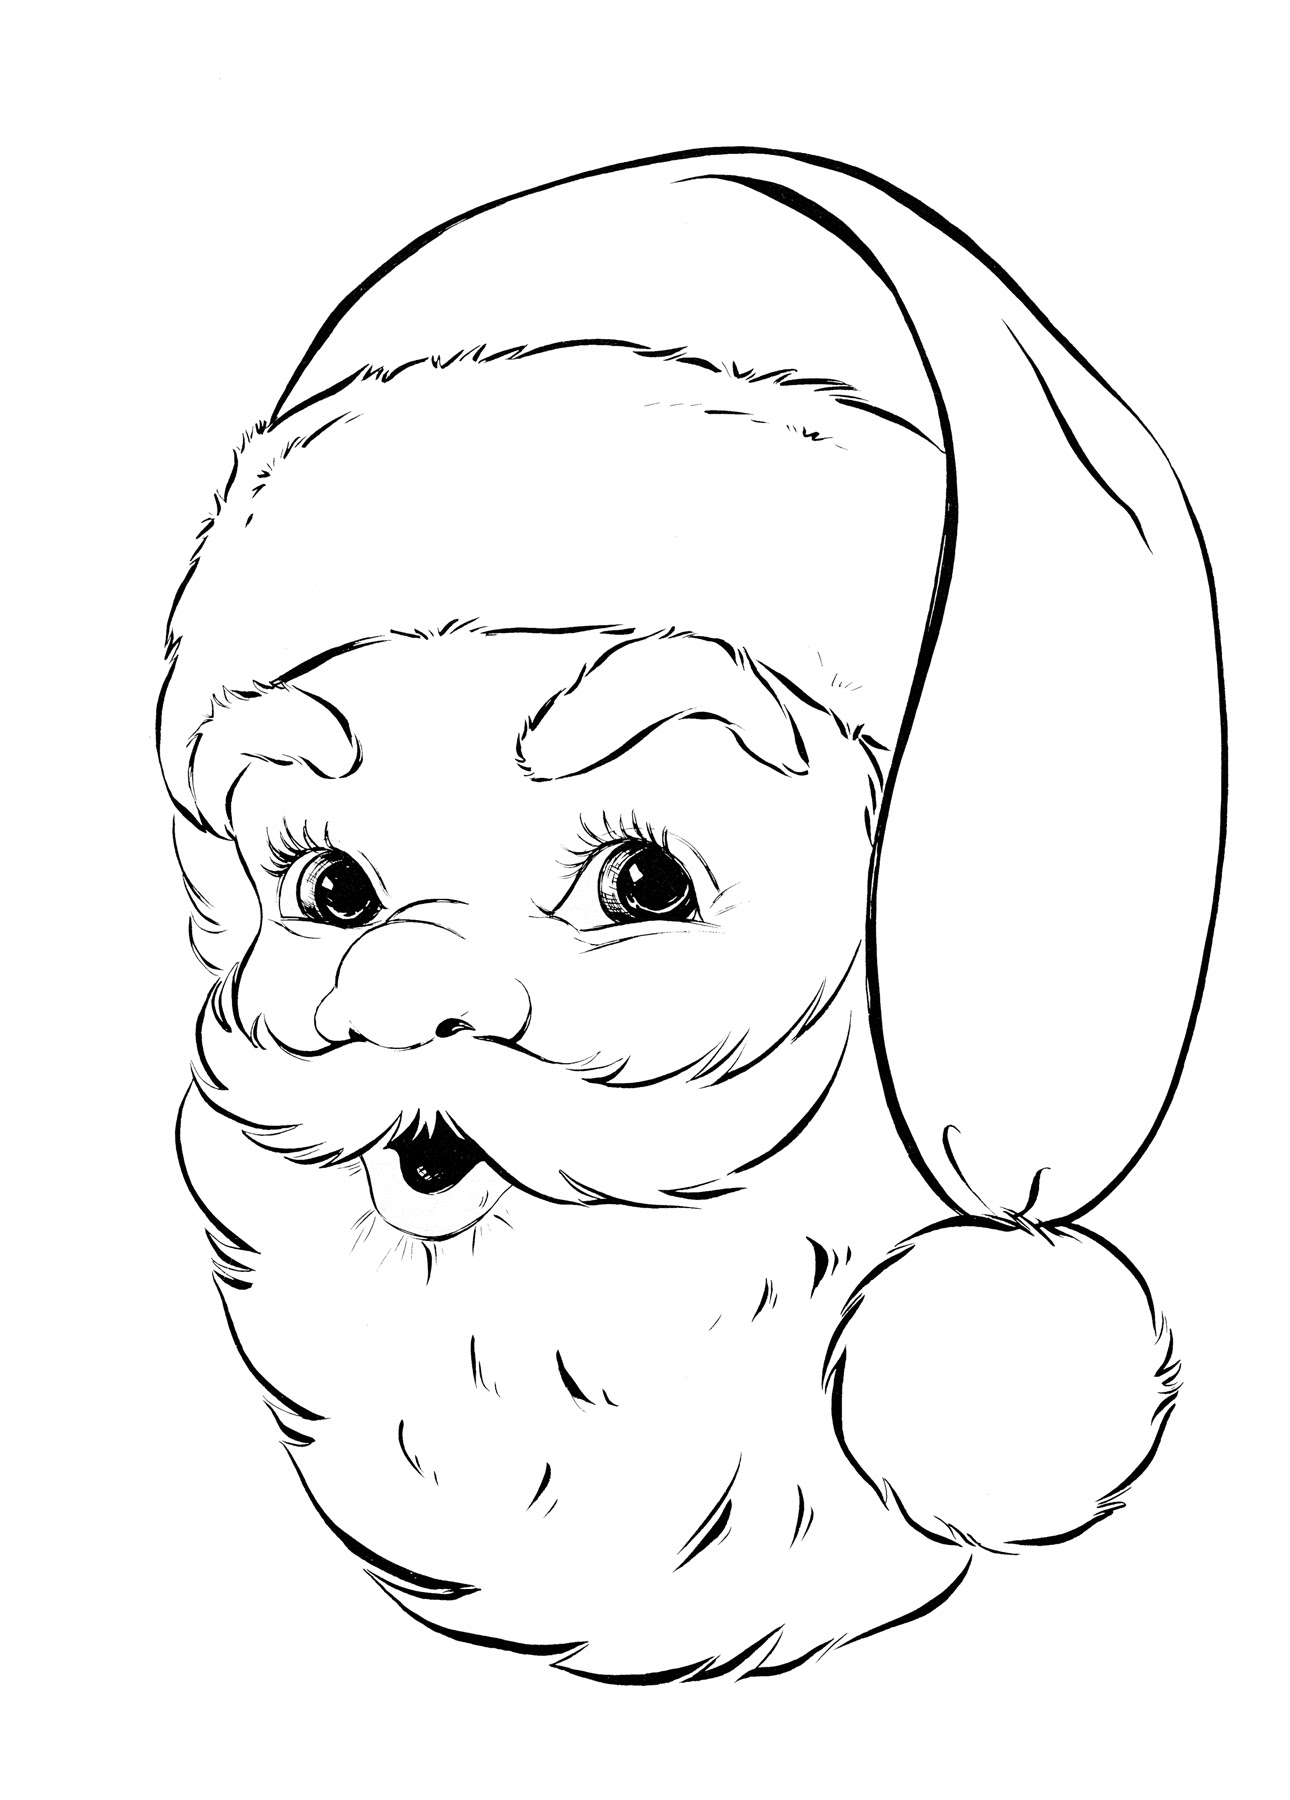 Coloring Pages For 8 Year Old Boys | Free download on ...